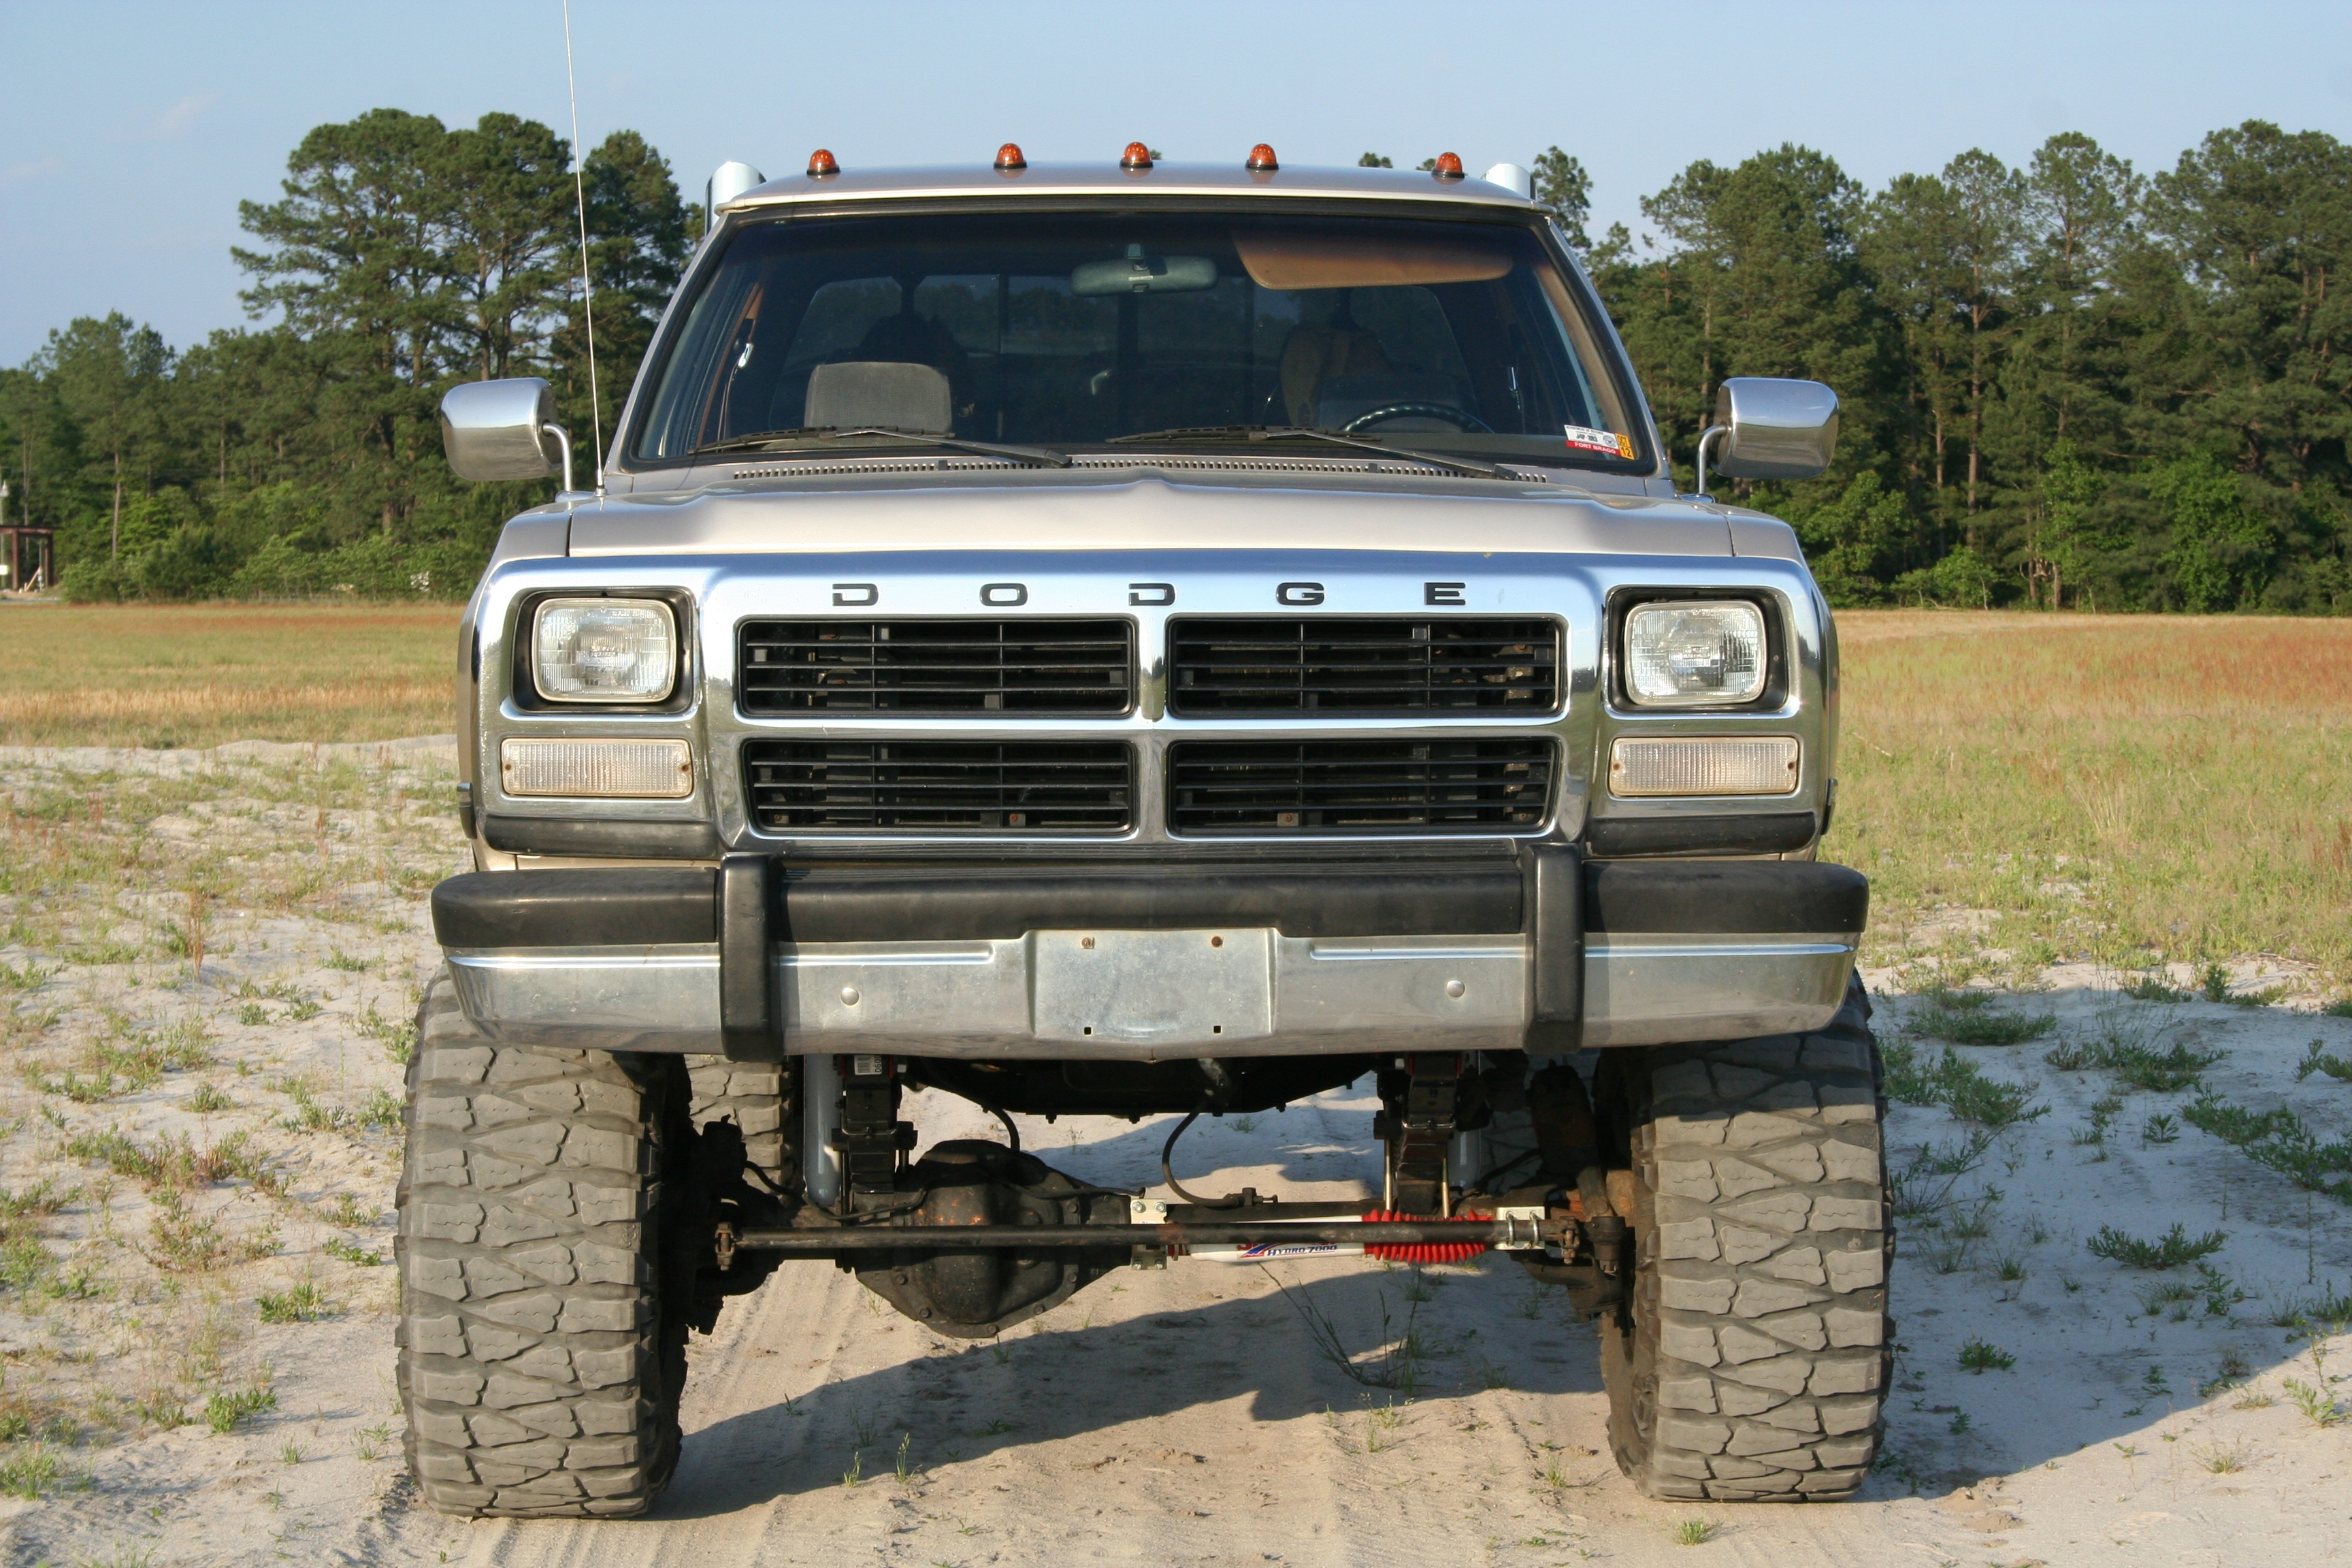 DODGE RAM 50 [USA] Standard Cab Pickup (US)